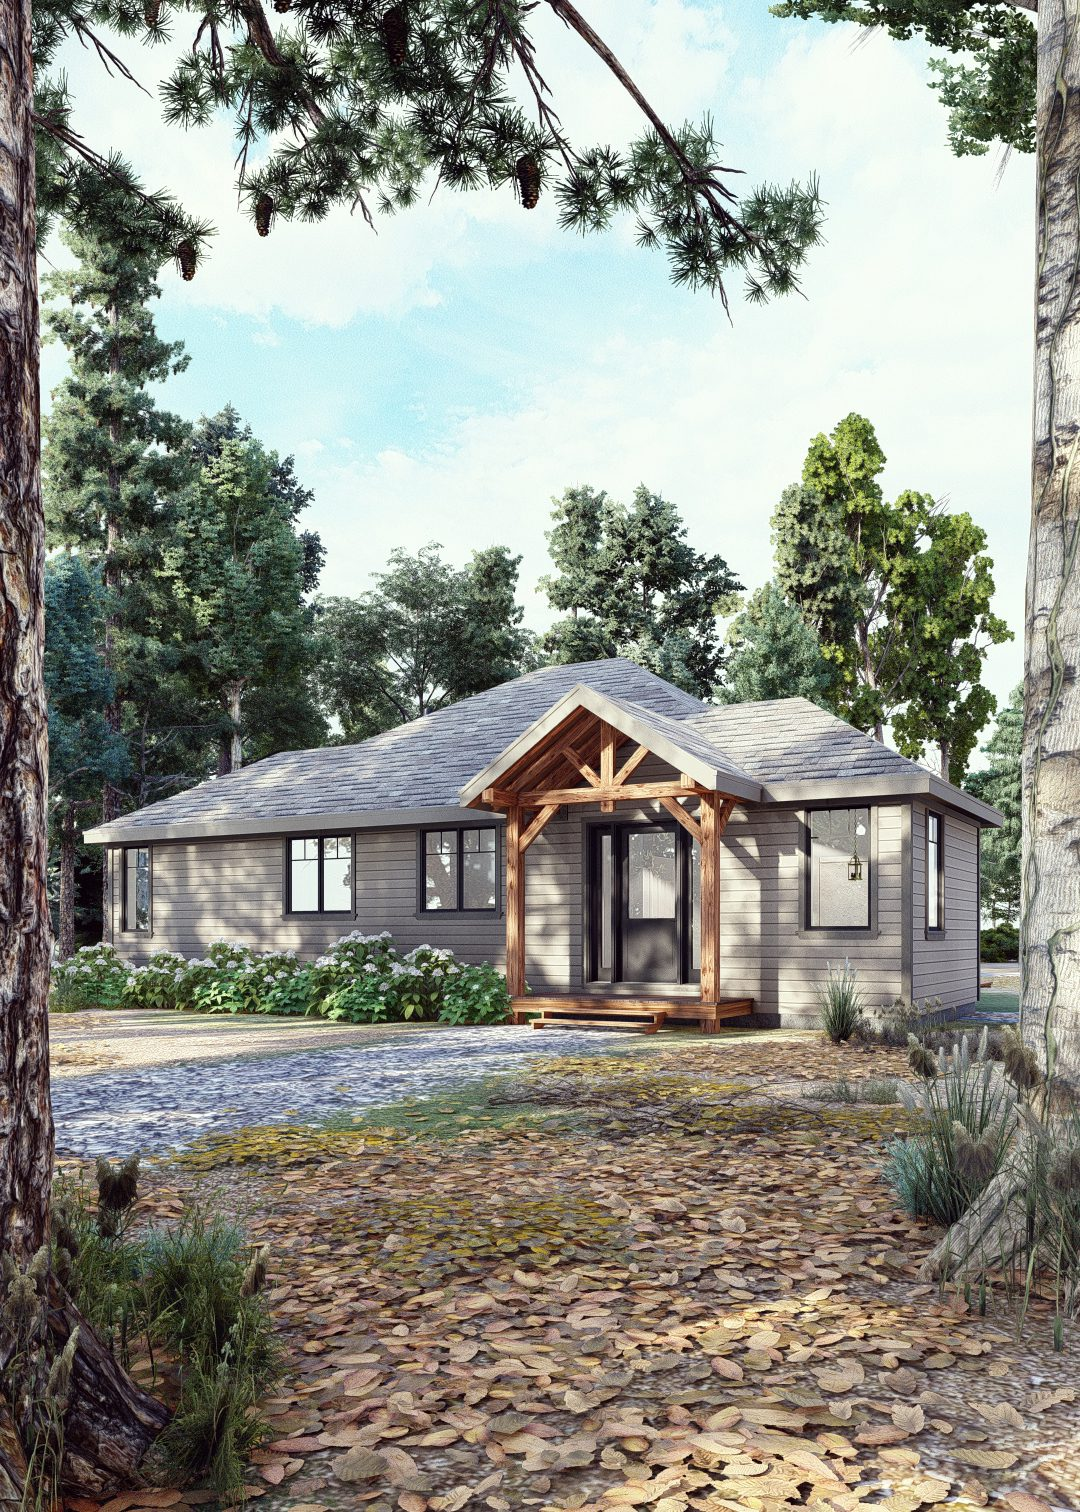 Timber Frame Bungalow Plans | The Herridge 3979 | Normerica | Exterior, Front